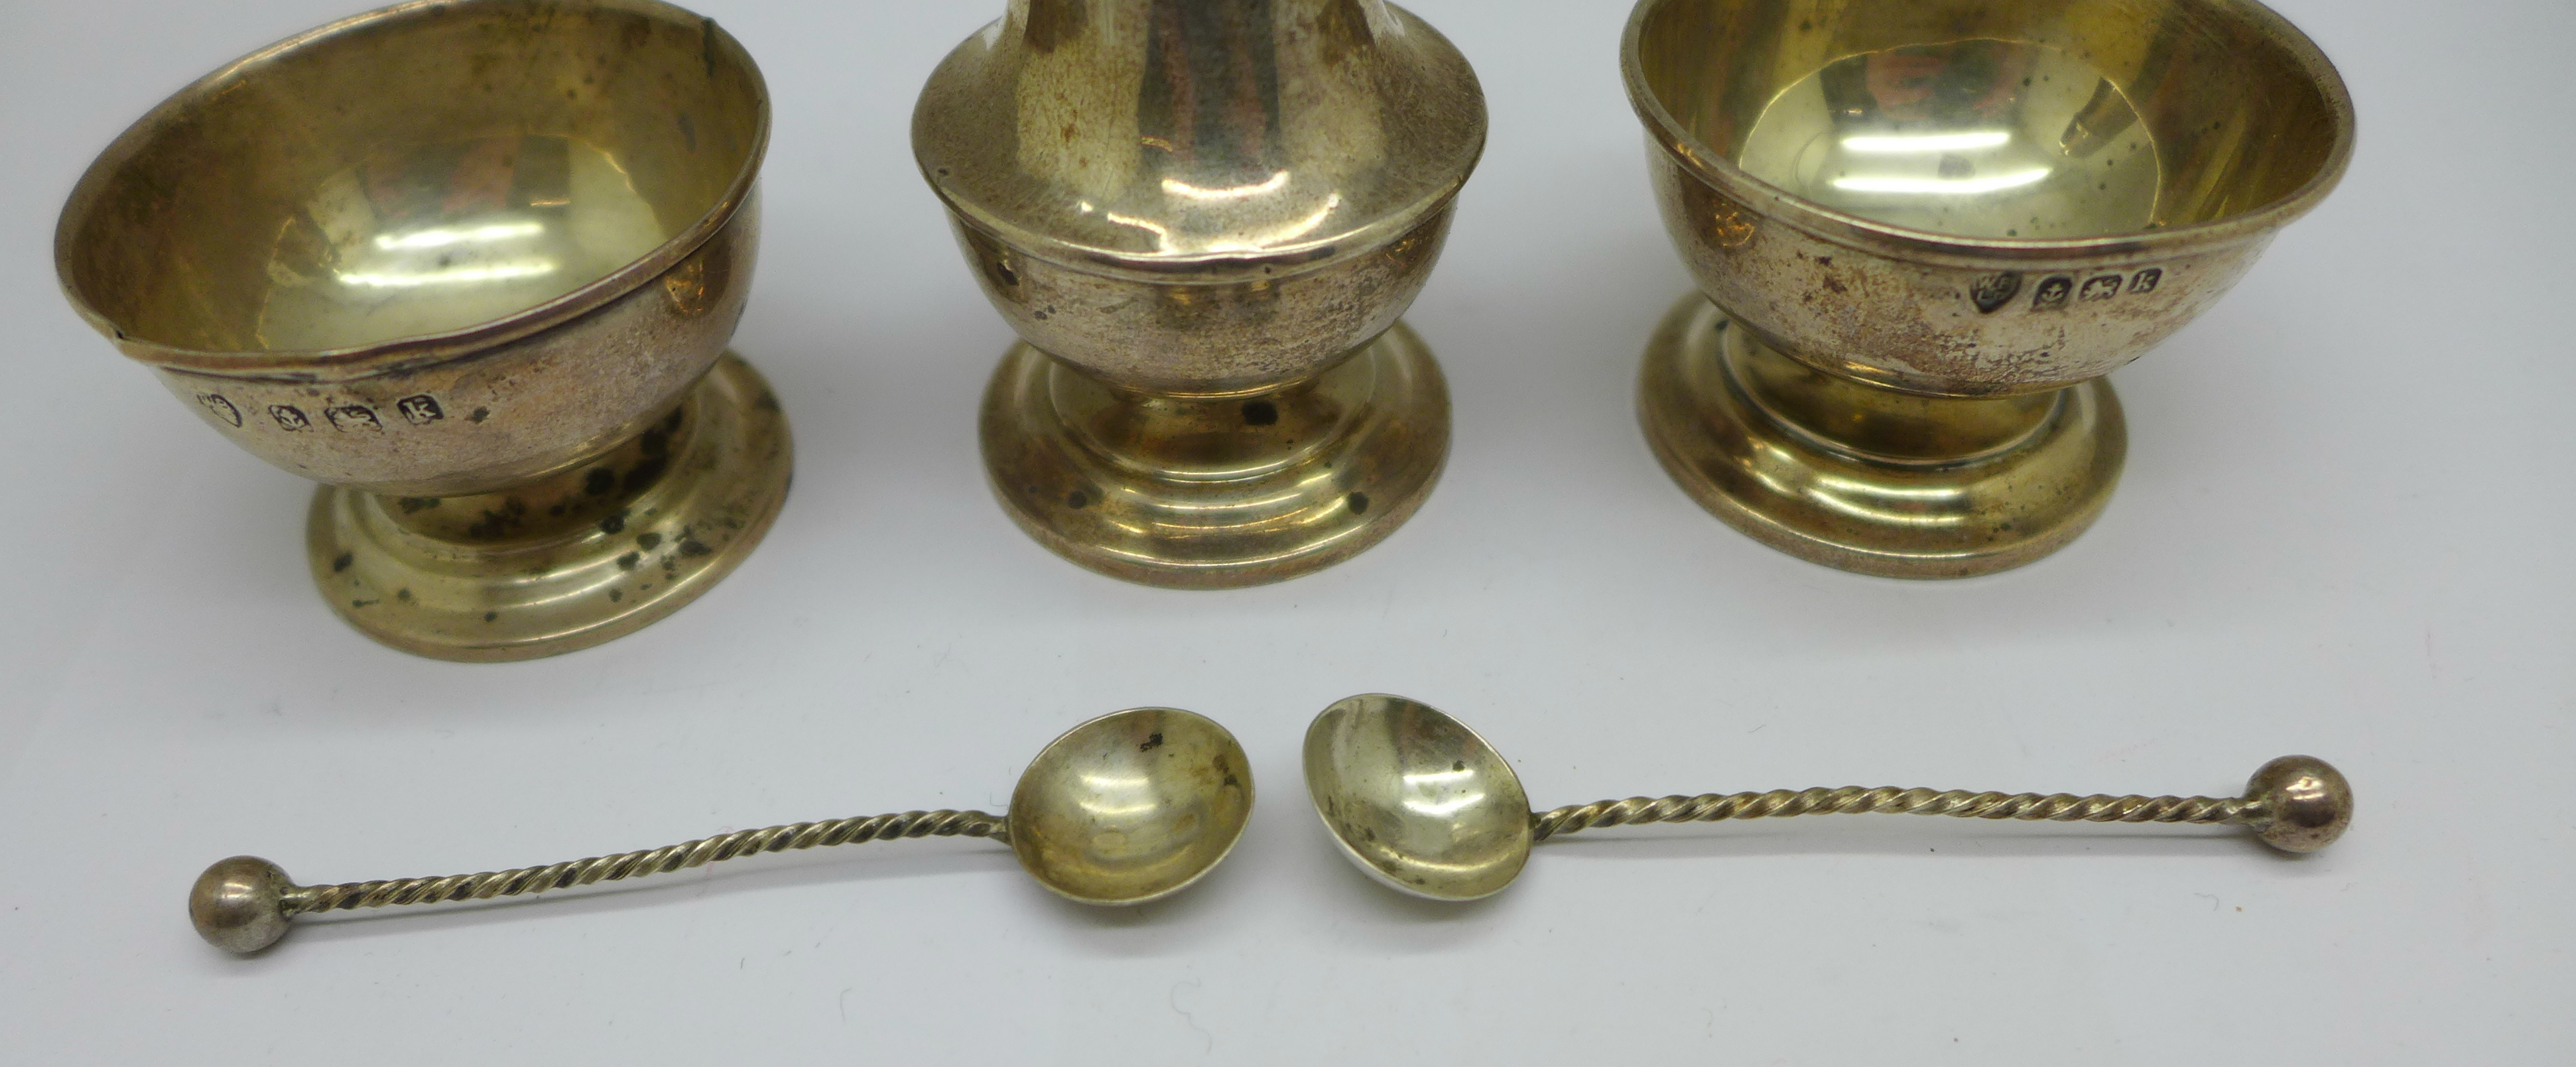 A pair of silver salts, one a/f, spoons and a pepper, 36g - Image 4 of 5